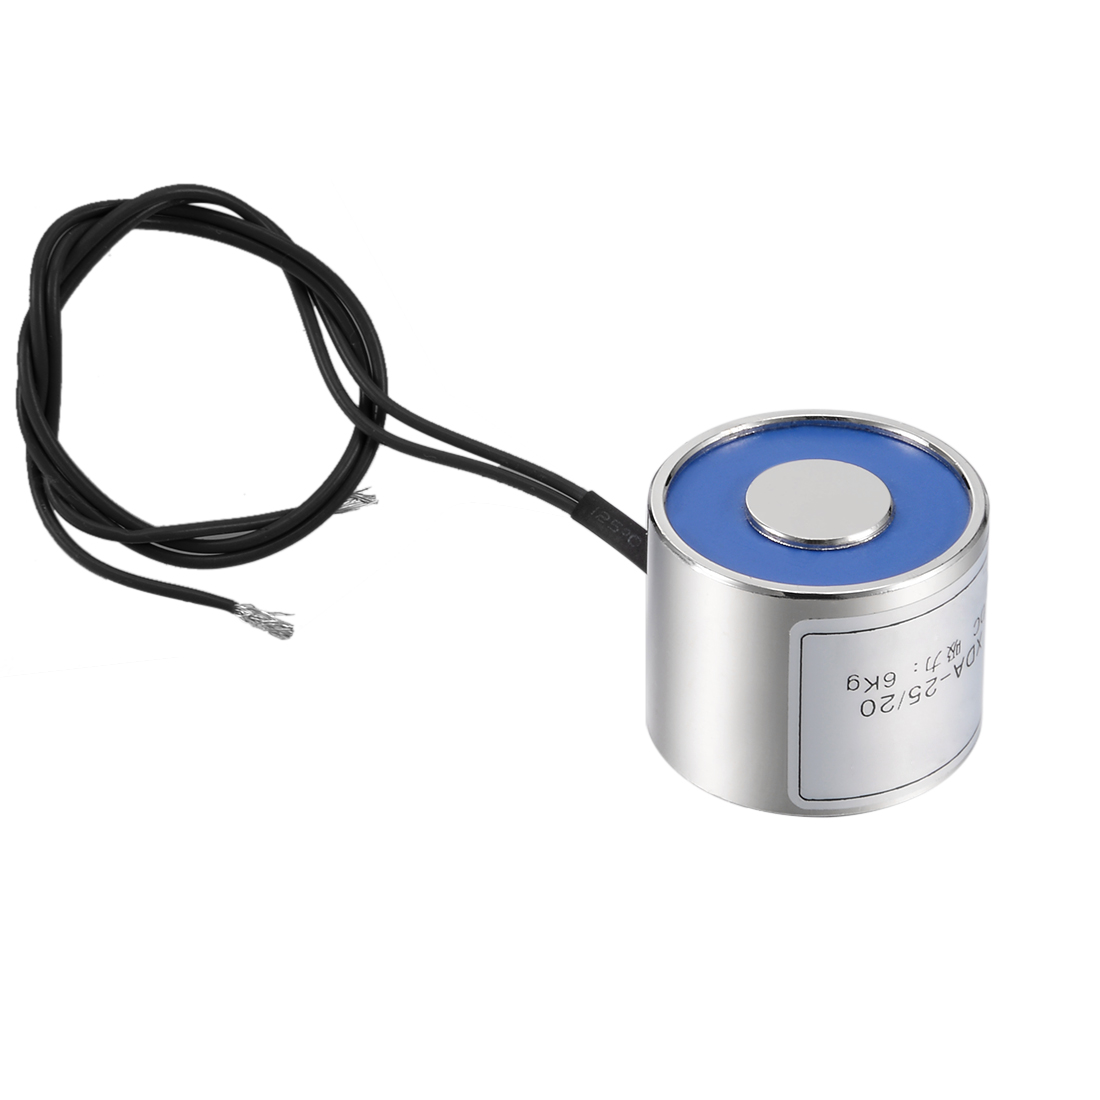 Uxcell 25mm X 20mm DC12V 60N Sucking Disc Solenoid Lift Holding Electromagnet